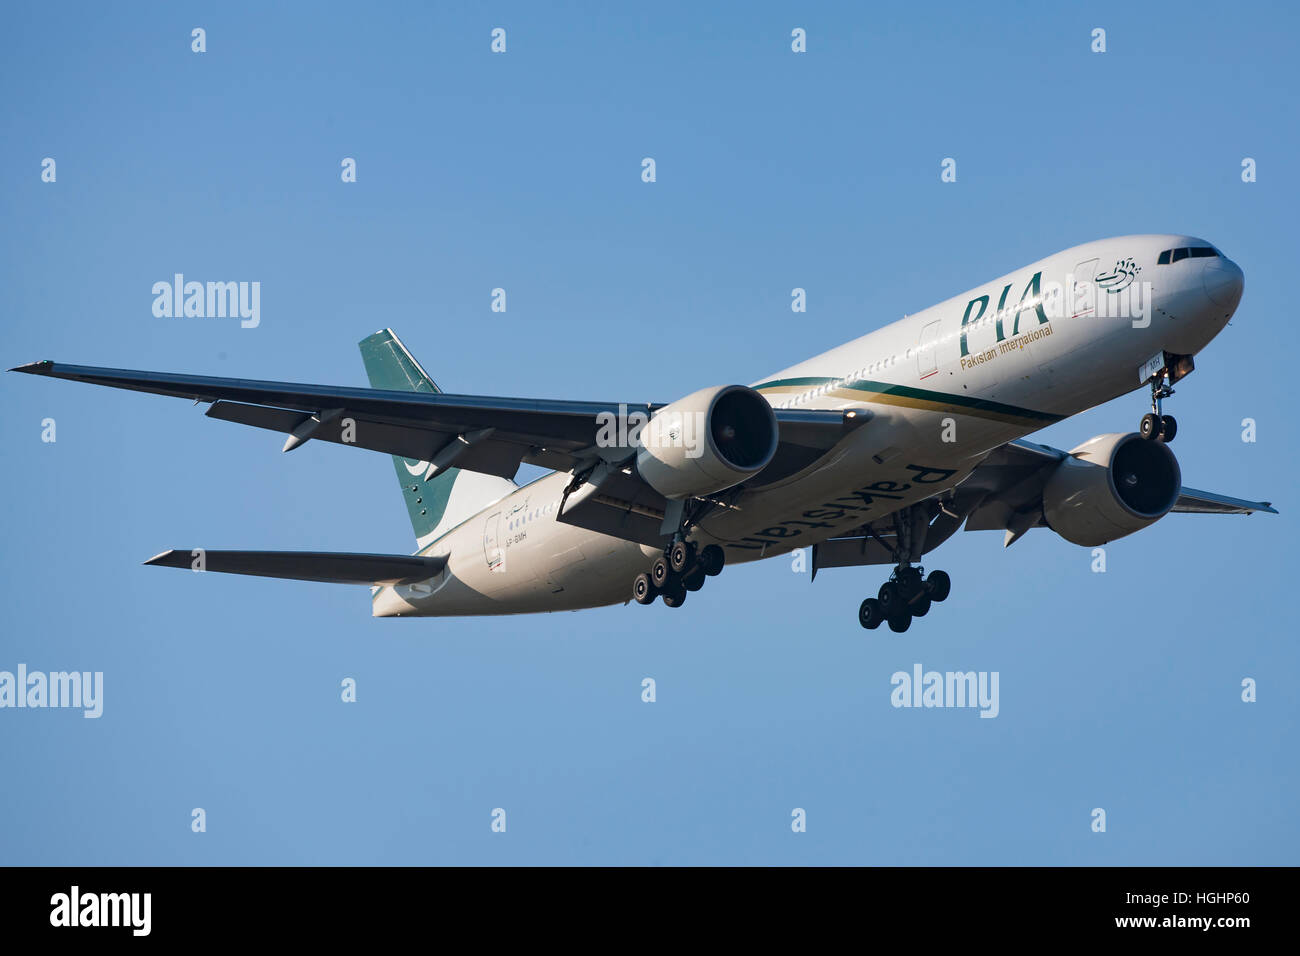 Pakistan International Airline landing in Copenhagen - Stock Image